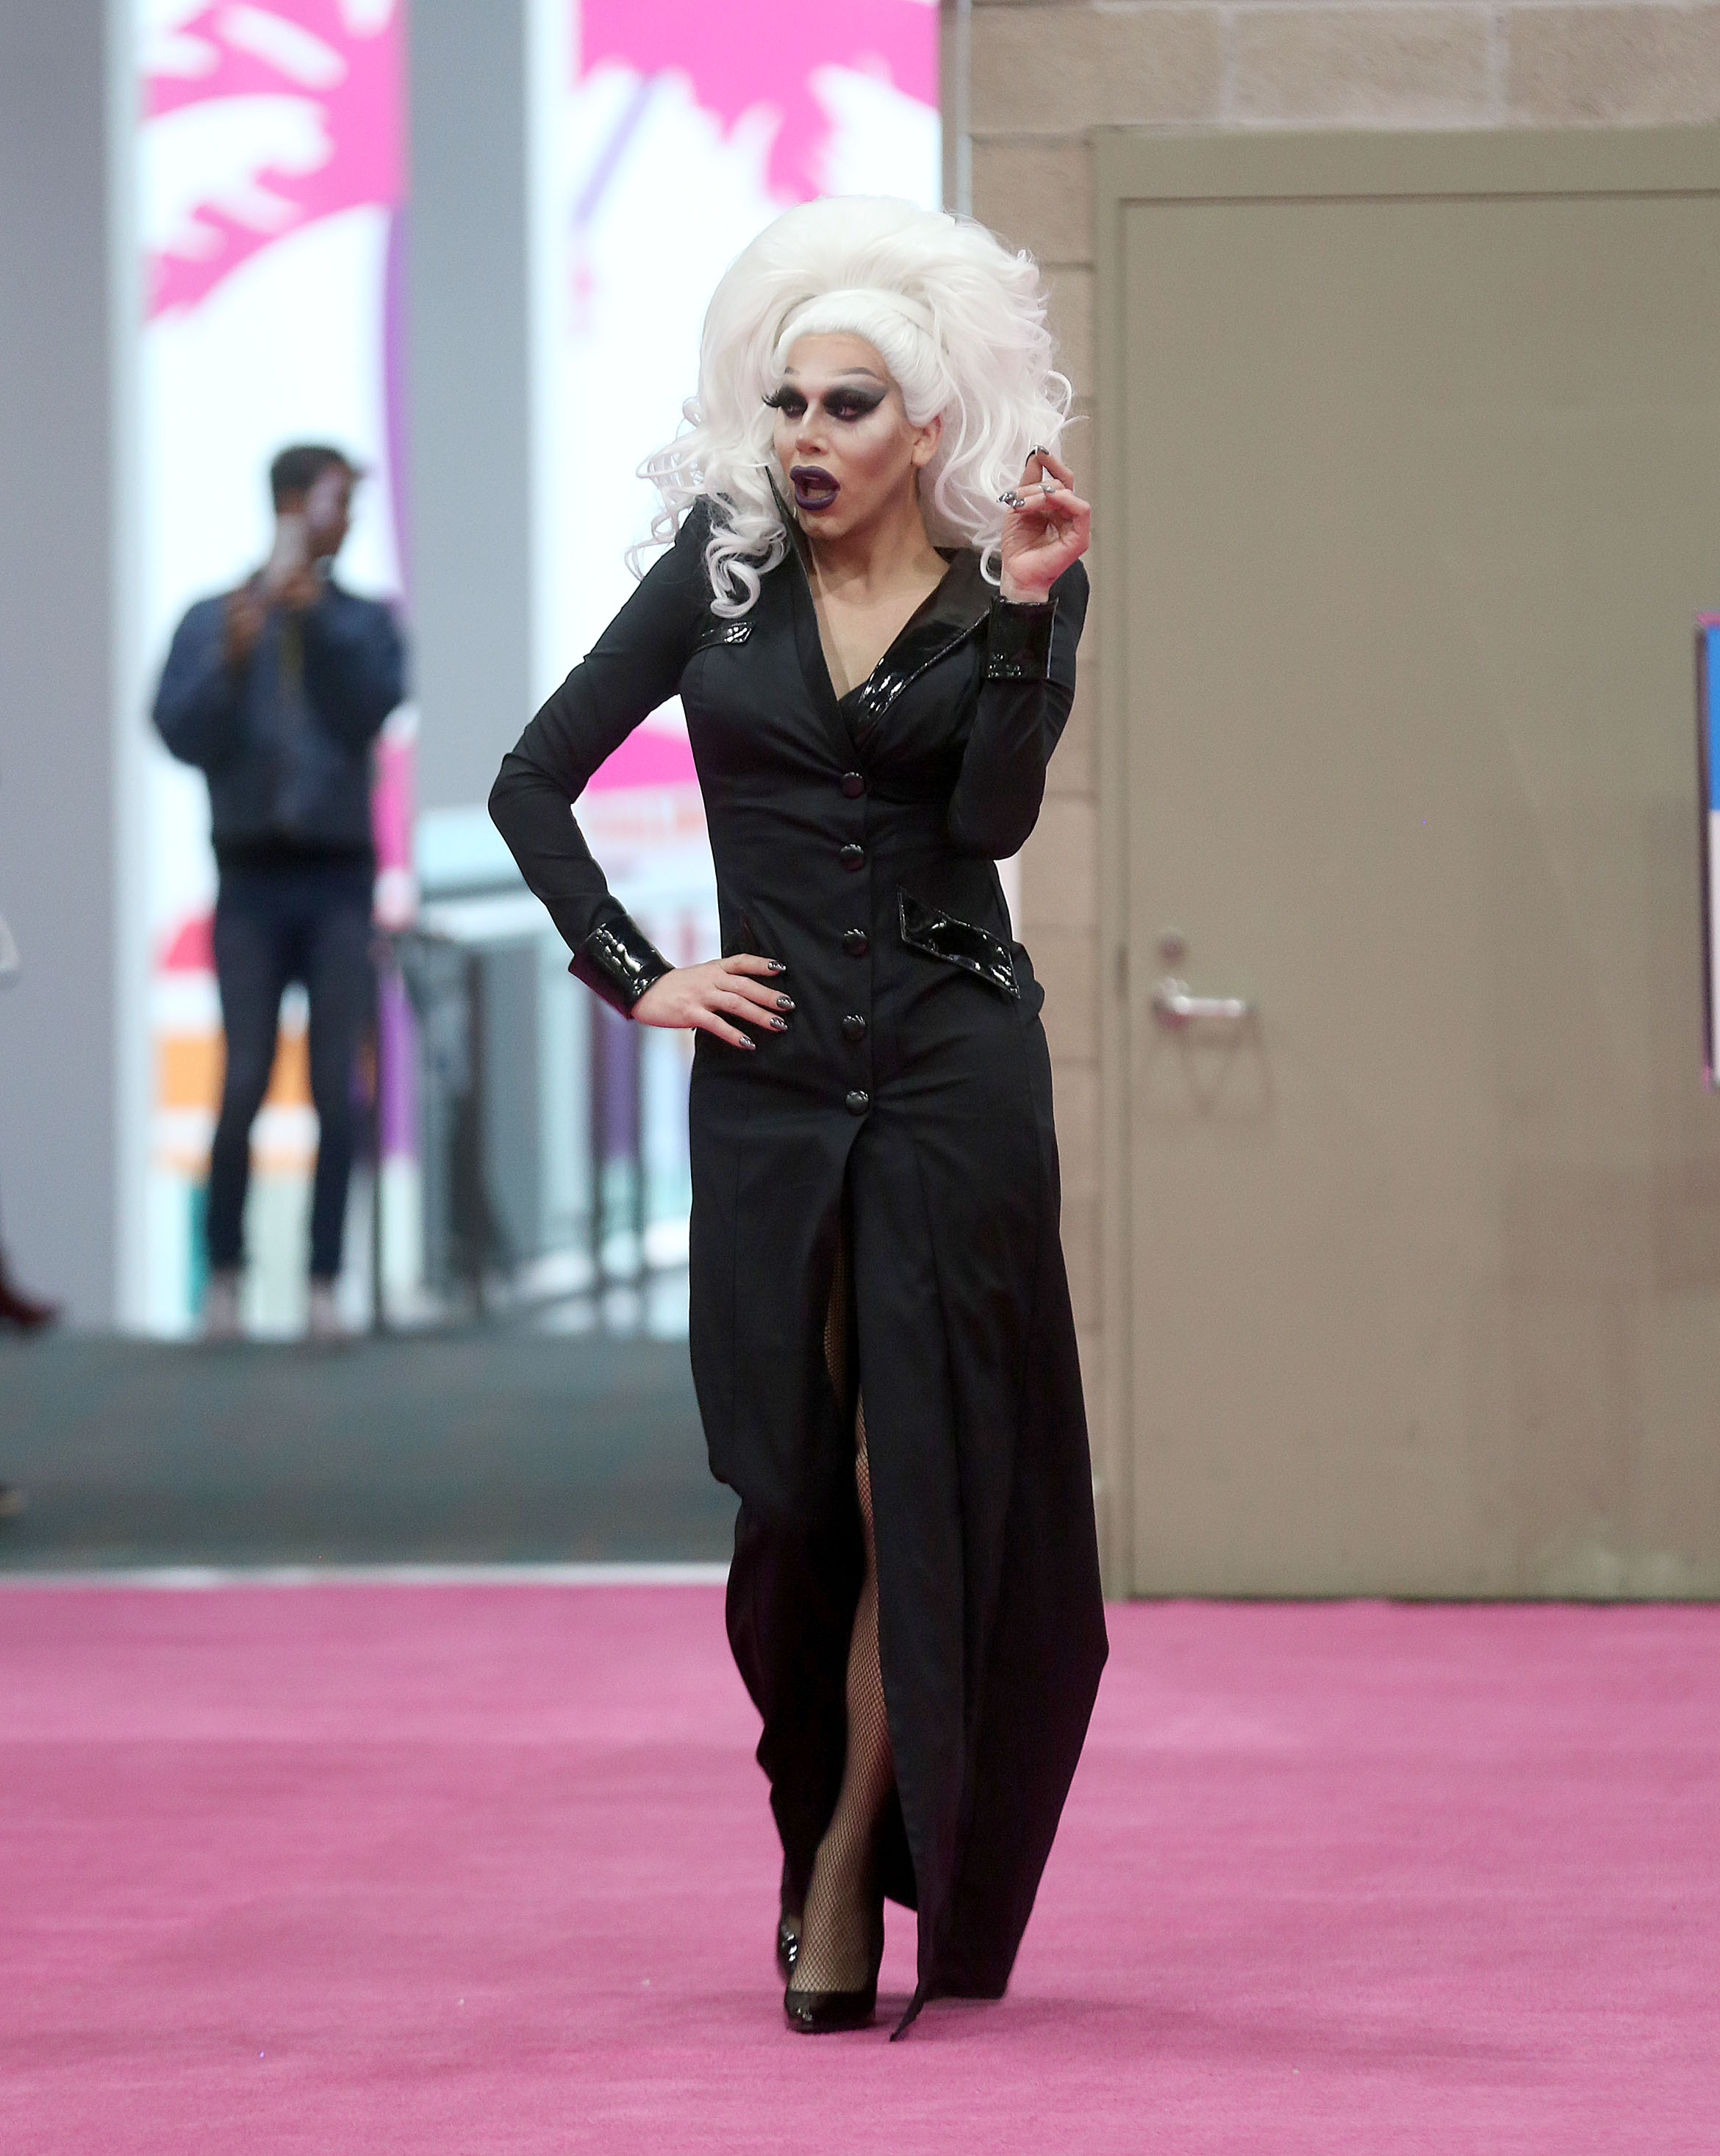 Sharon Needles DragCon